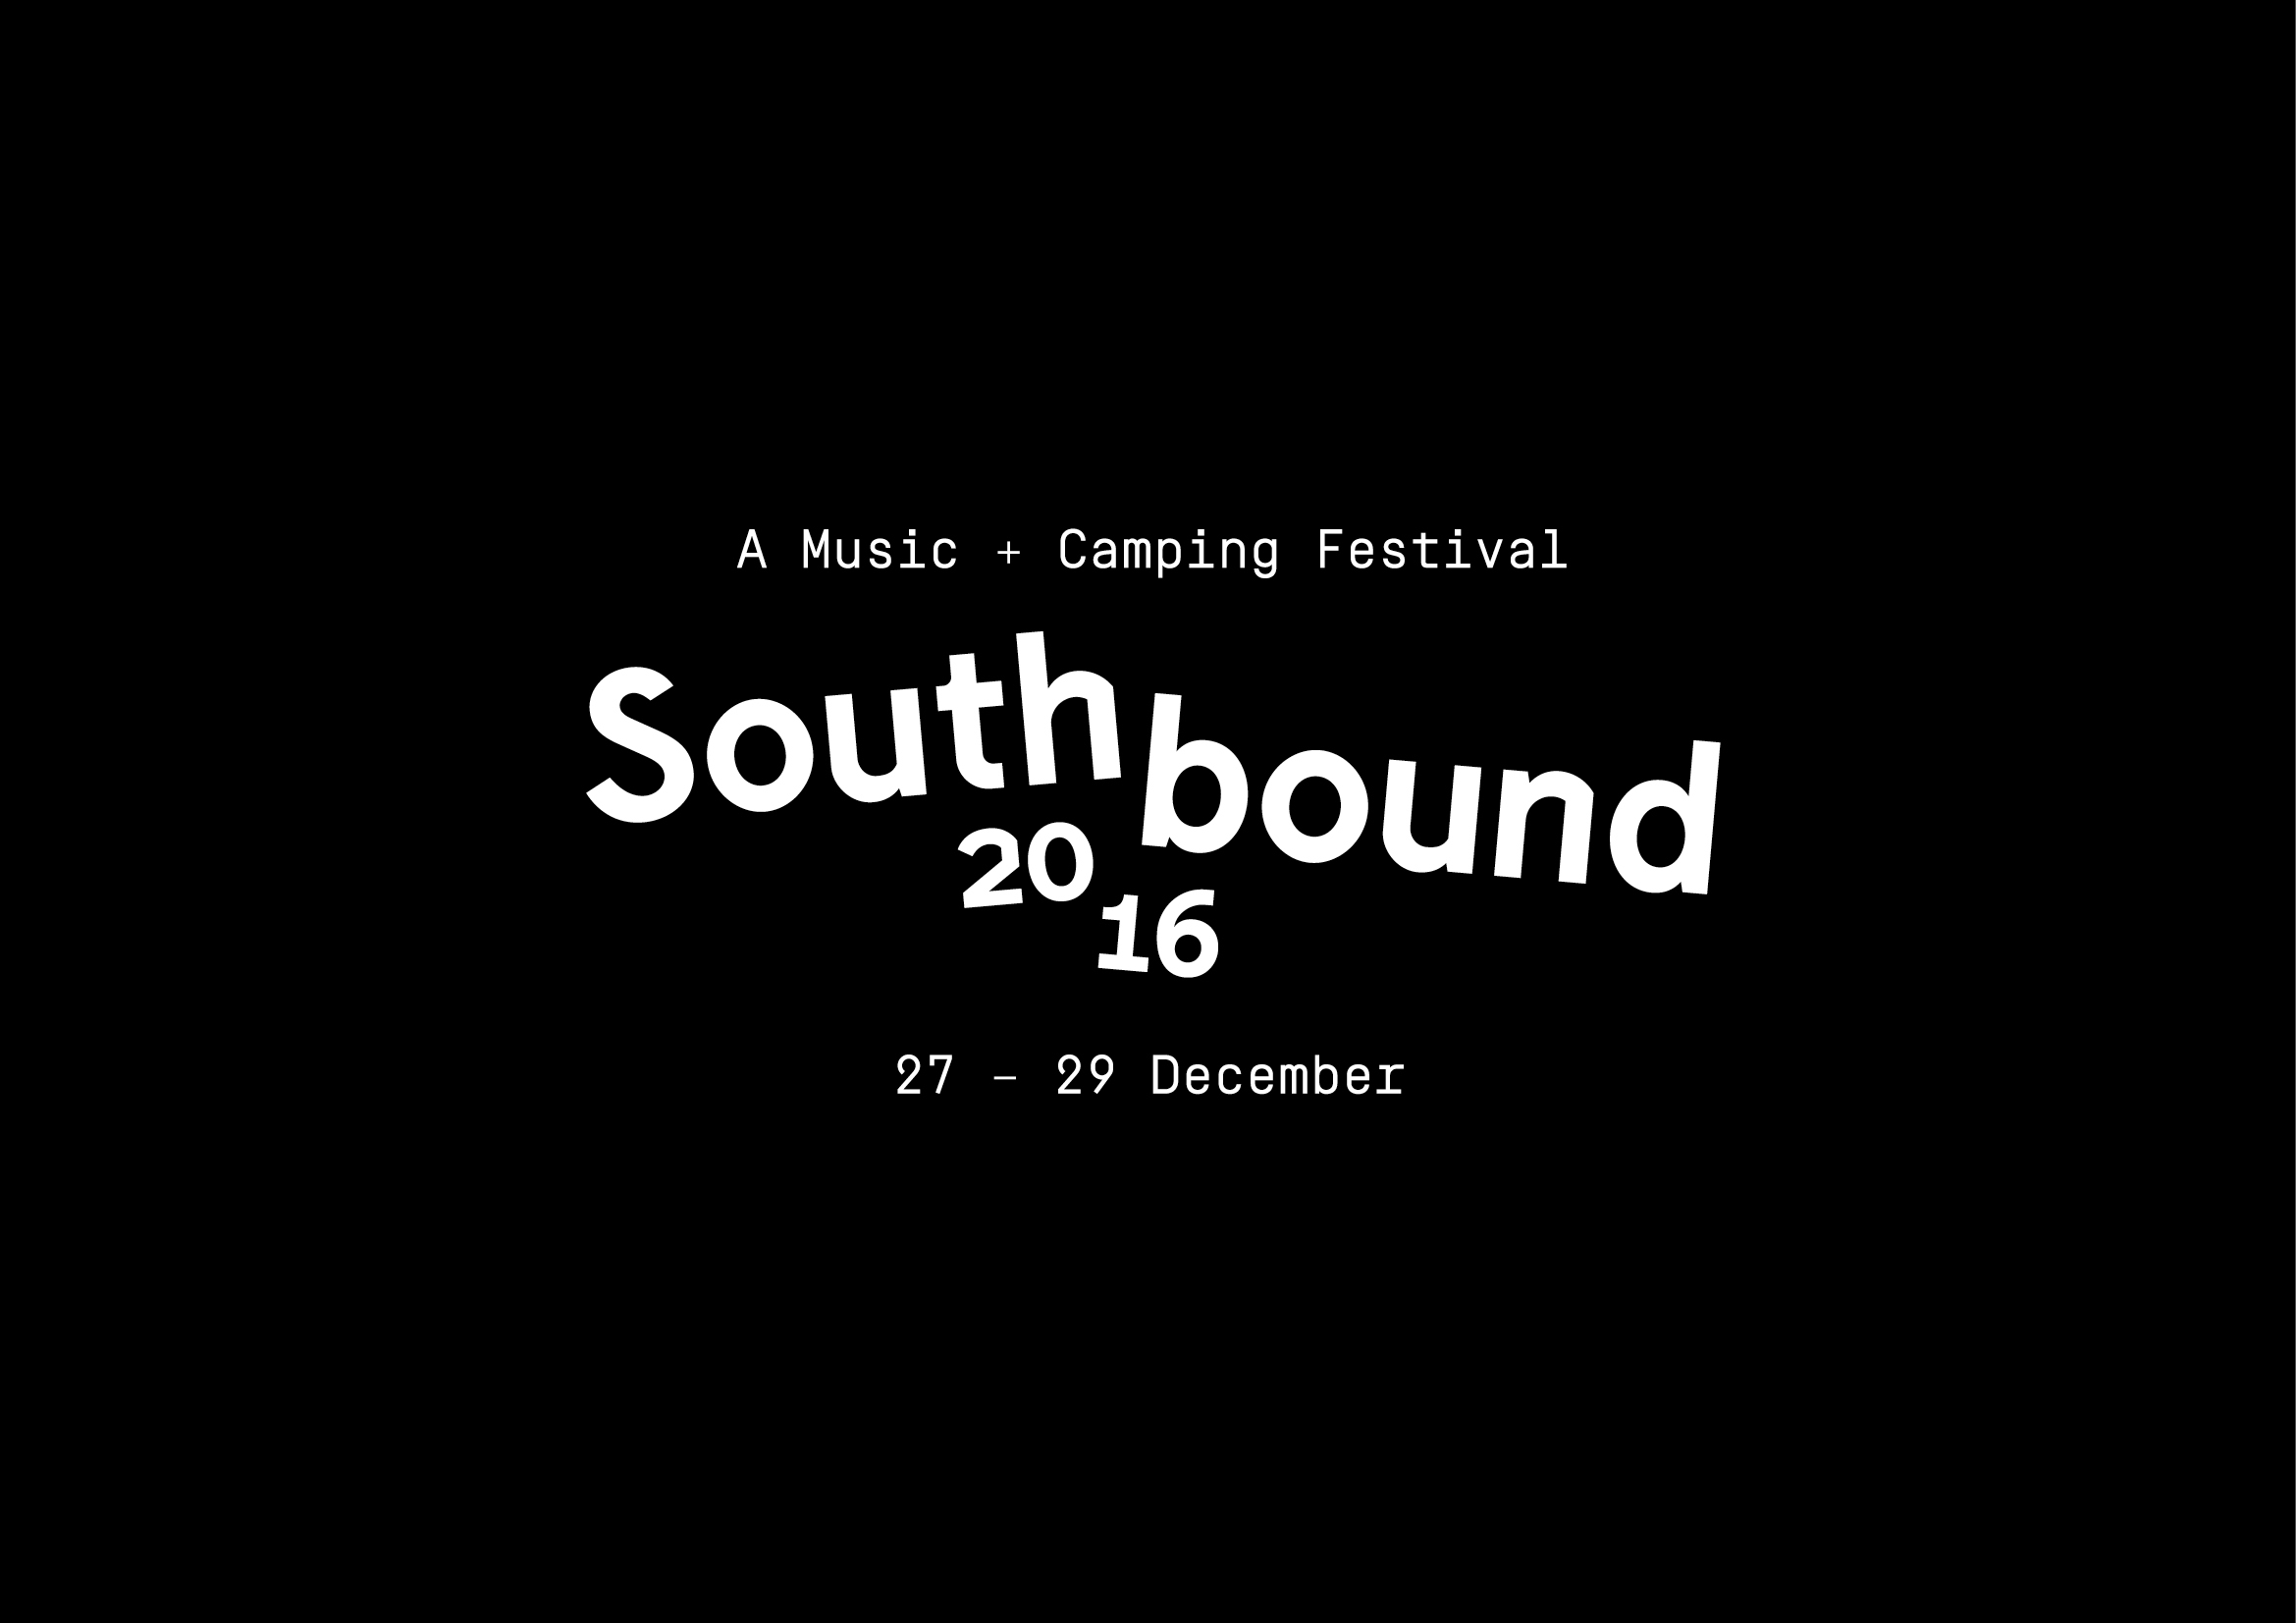 Completed at Sunset Events . 2016 Art Direction / Branding / Illustration / Digital Marketing   Southbound is WA's sole music and camping festival, hosting a large range of talent from overseas headliners to upcoming Australian acts. Held in Busselton WA, the festivals branding draws on the beautiful landscape of the states south west. Incorporating colour and fun illustration to represent not only the Southbound experience but the journey to get there.